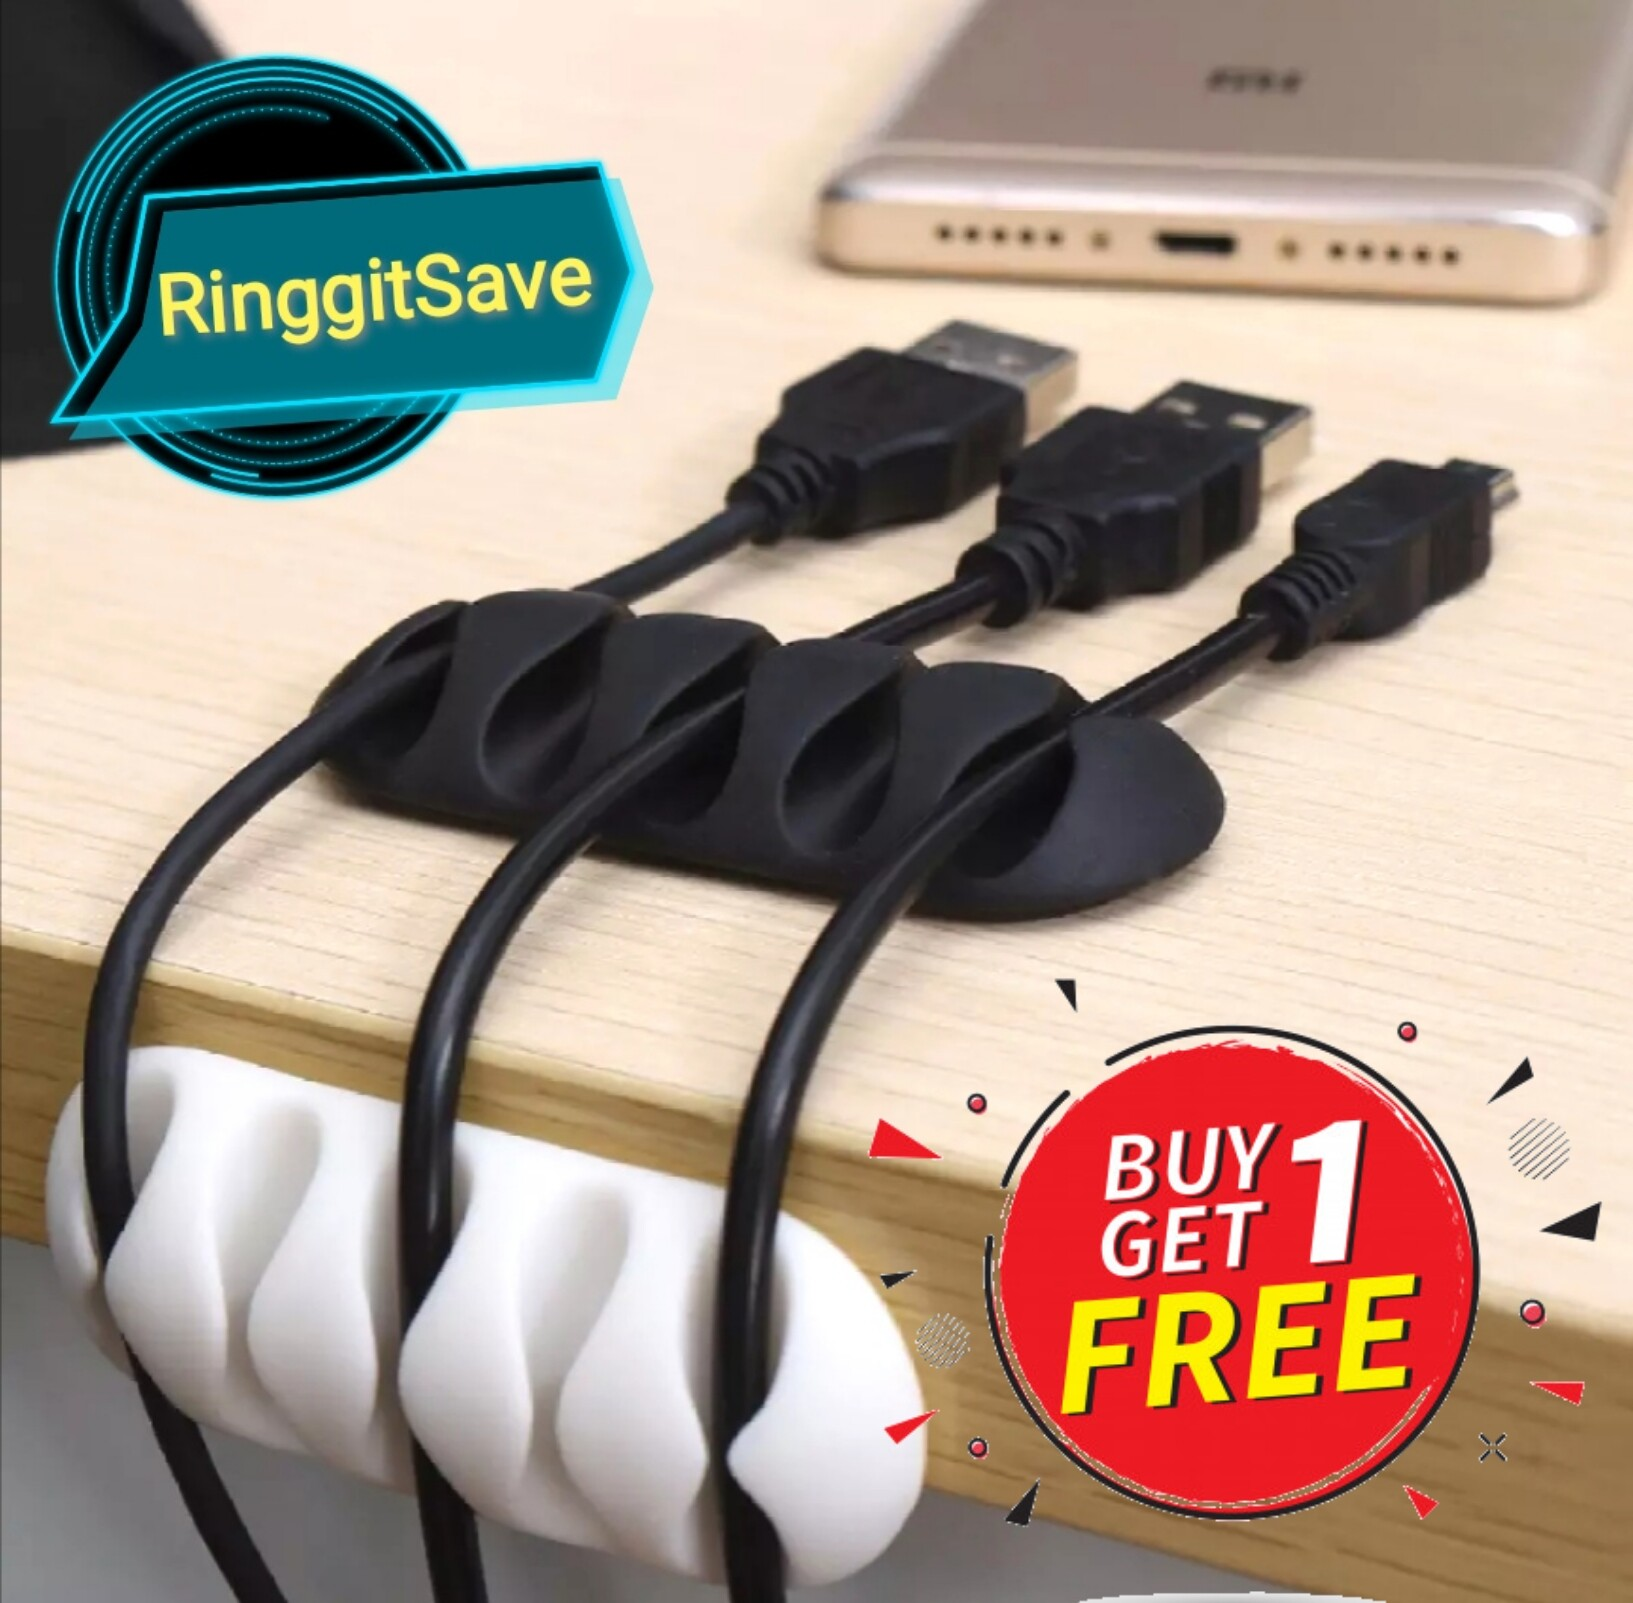 5Clip Cable Organizer Silicone USB Cable Winder (Buy 1 Free 1)